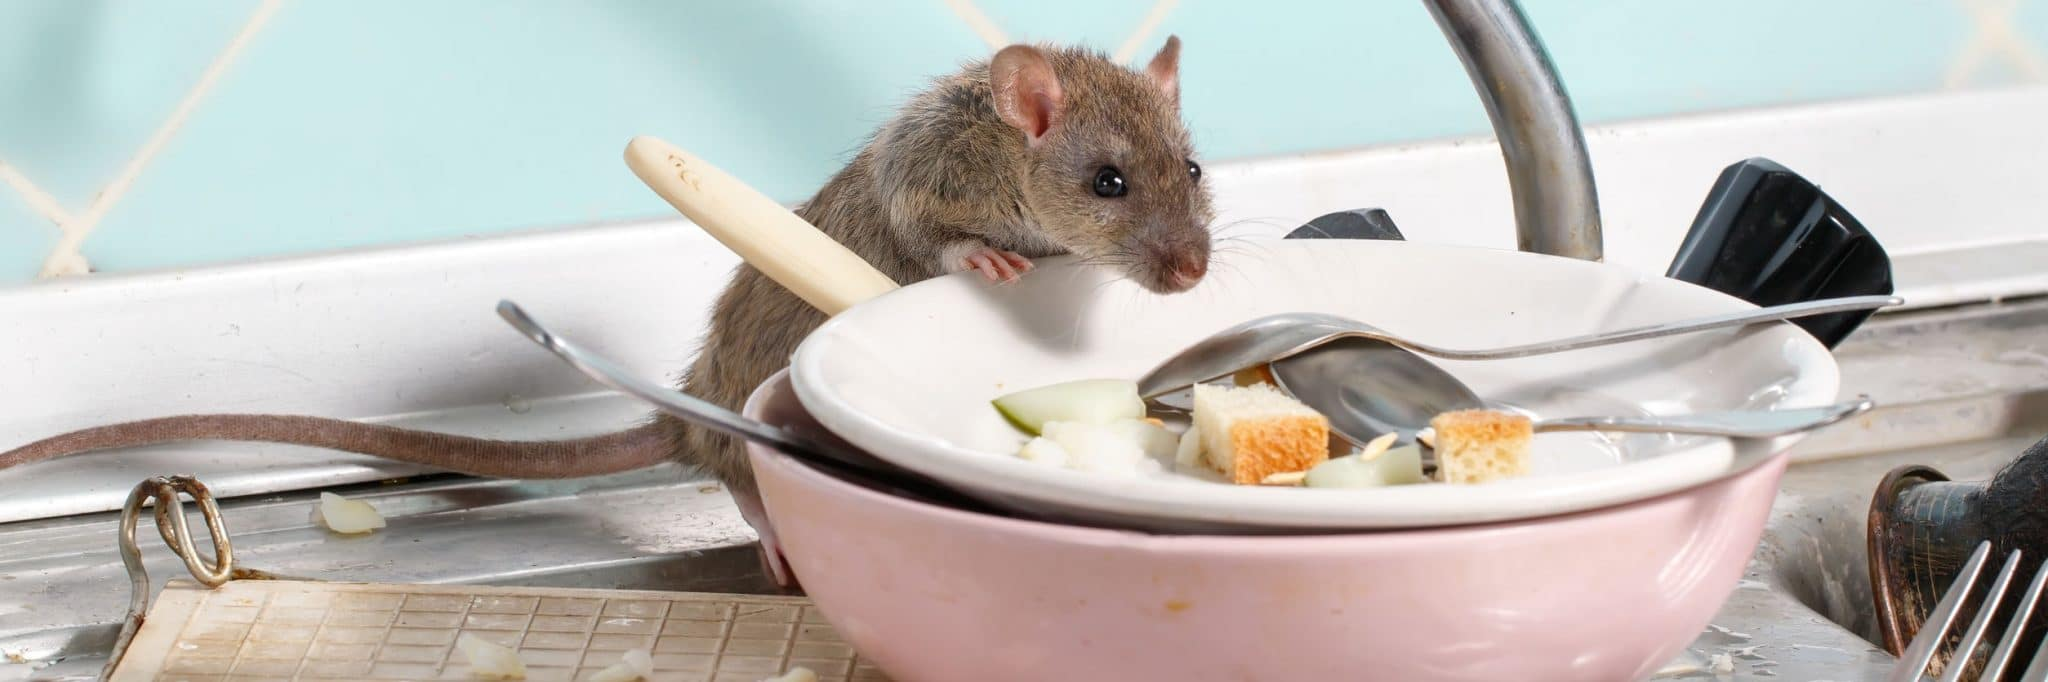 Rat on dish in a kitchen